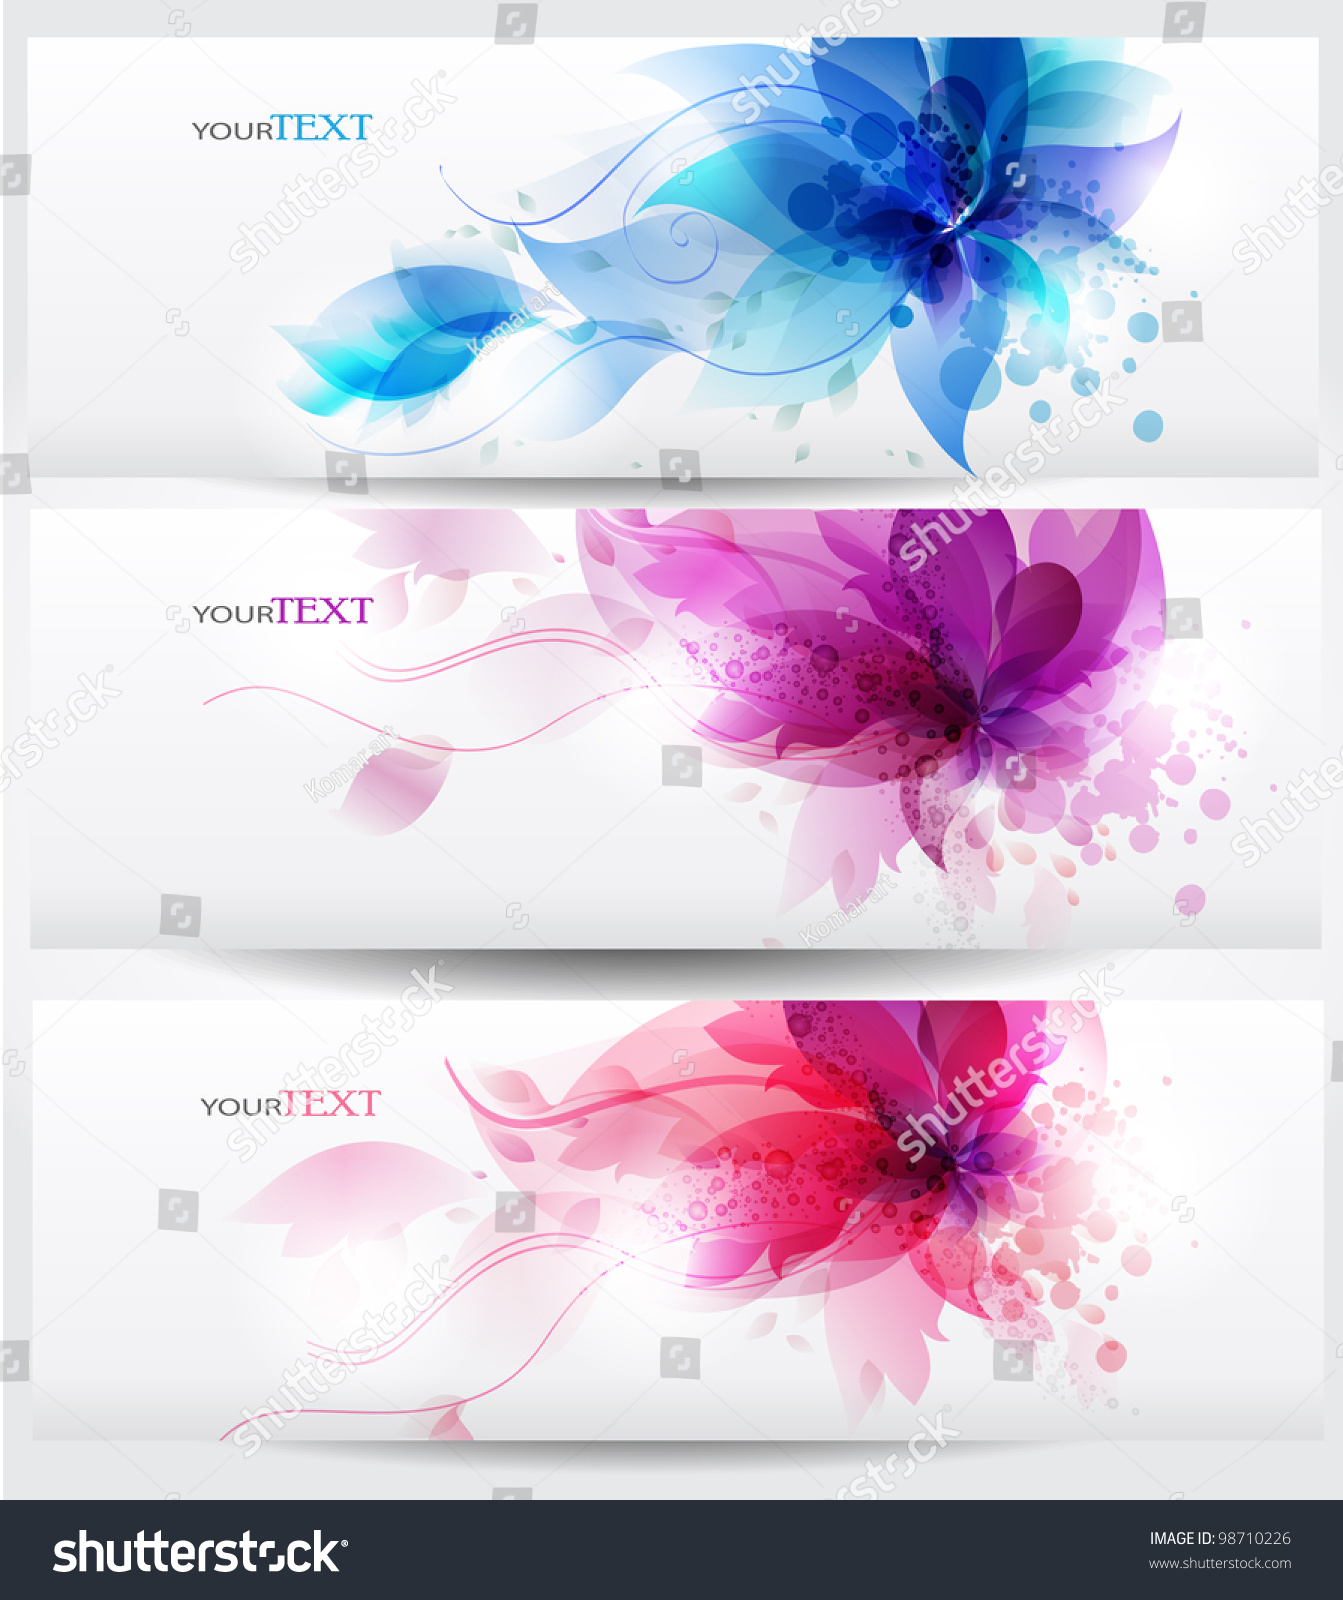 Flower Vector Background Brochure Template. Nature Layouts